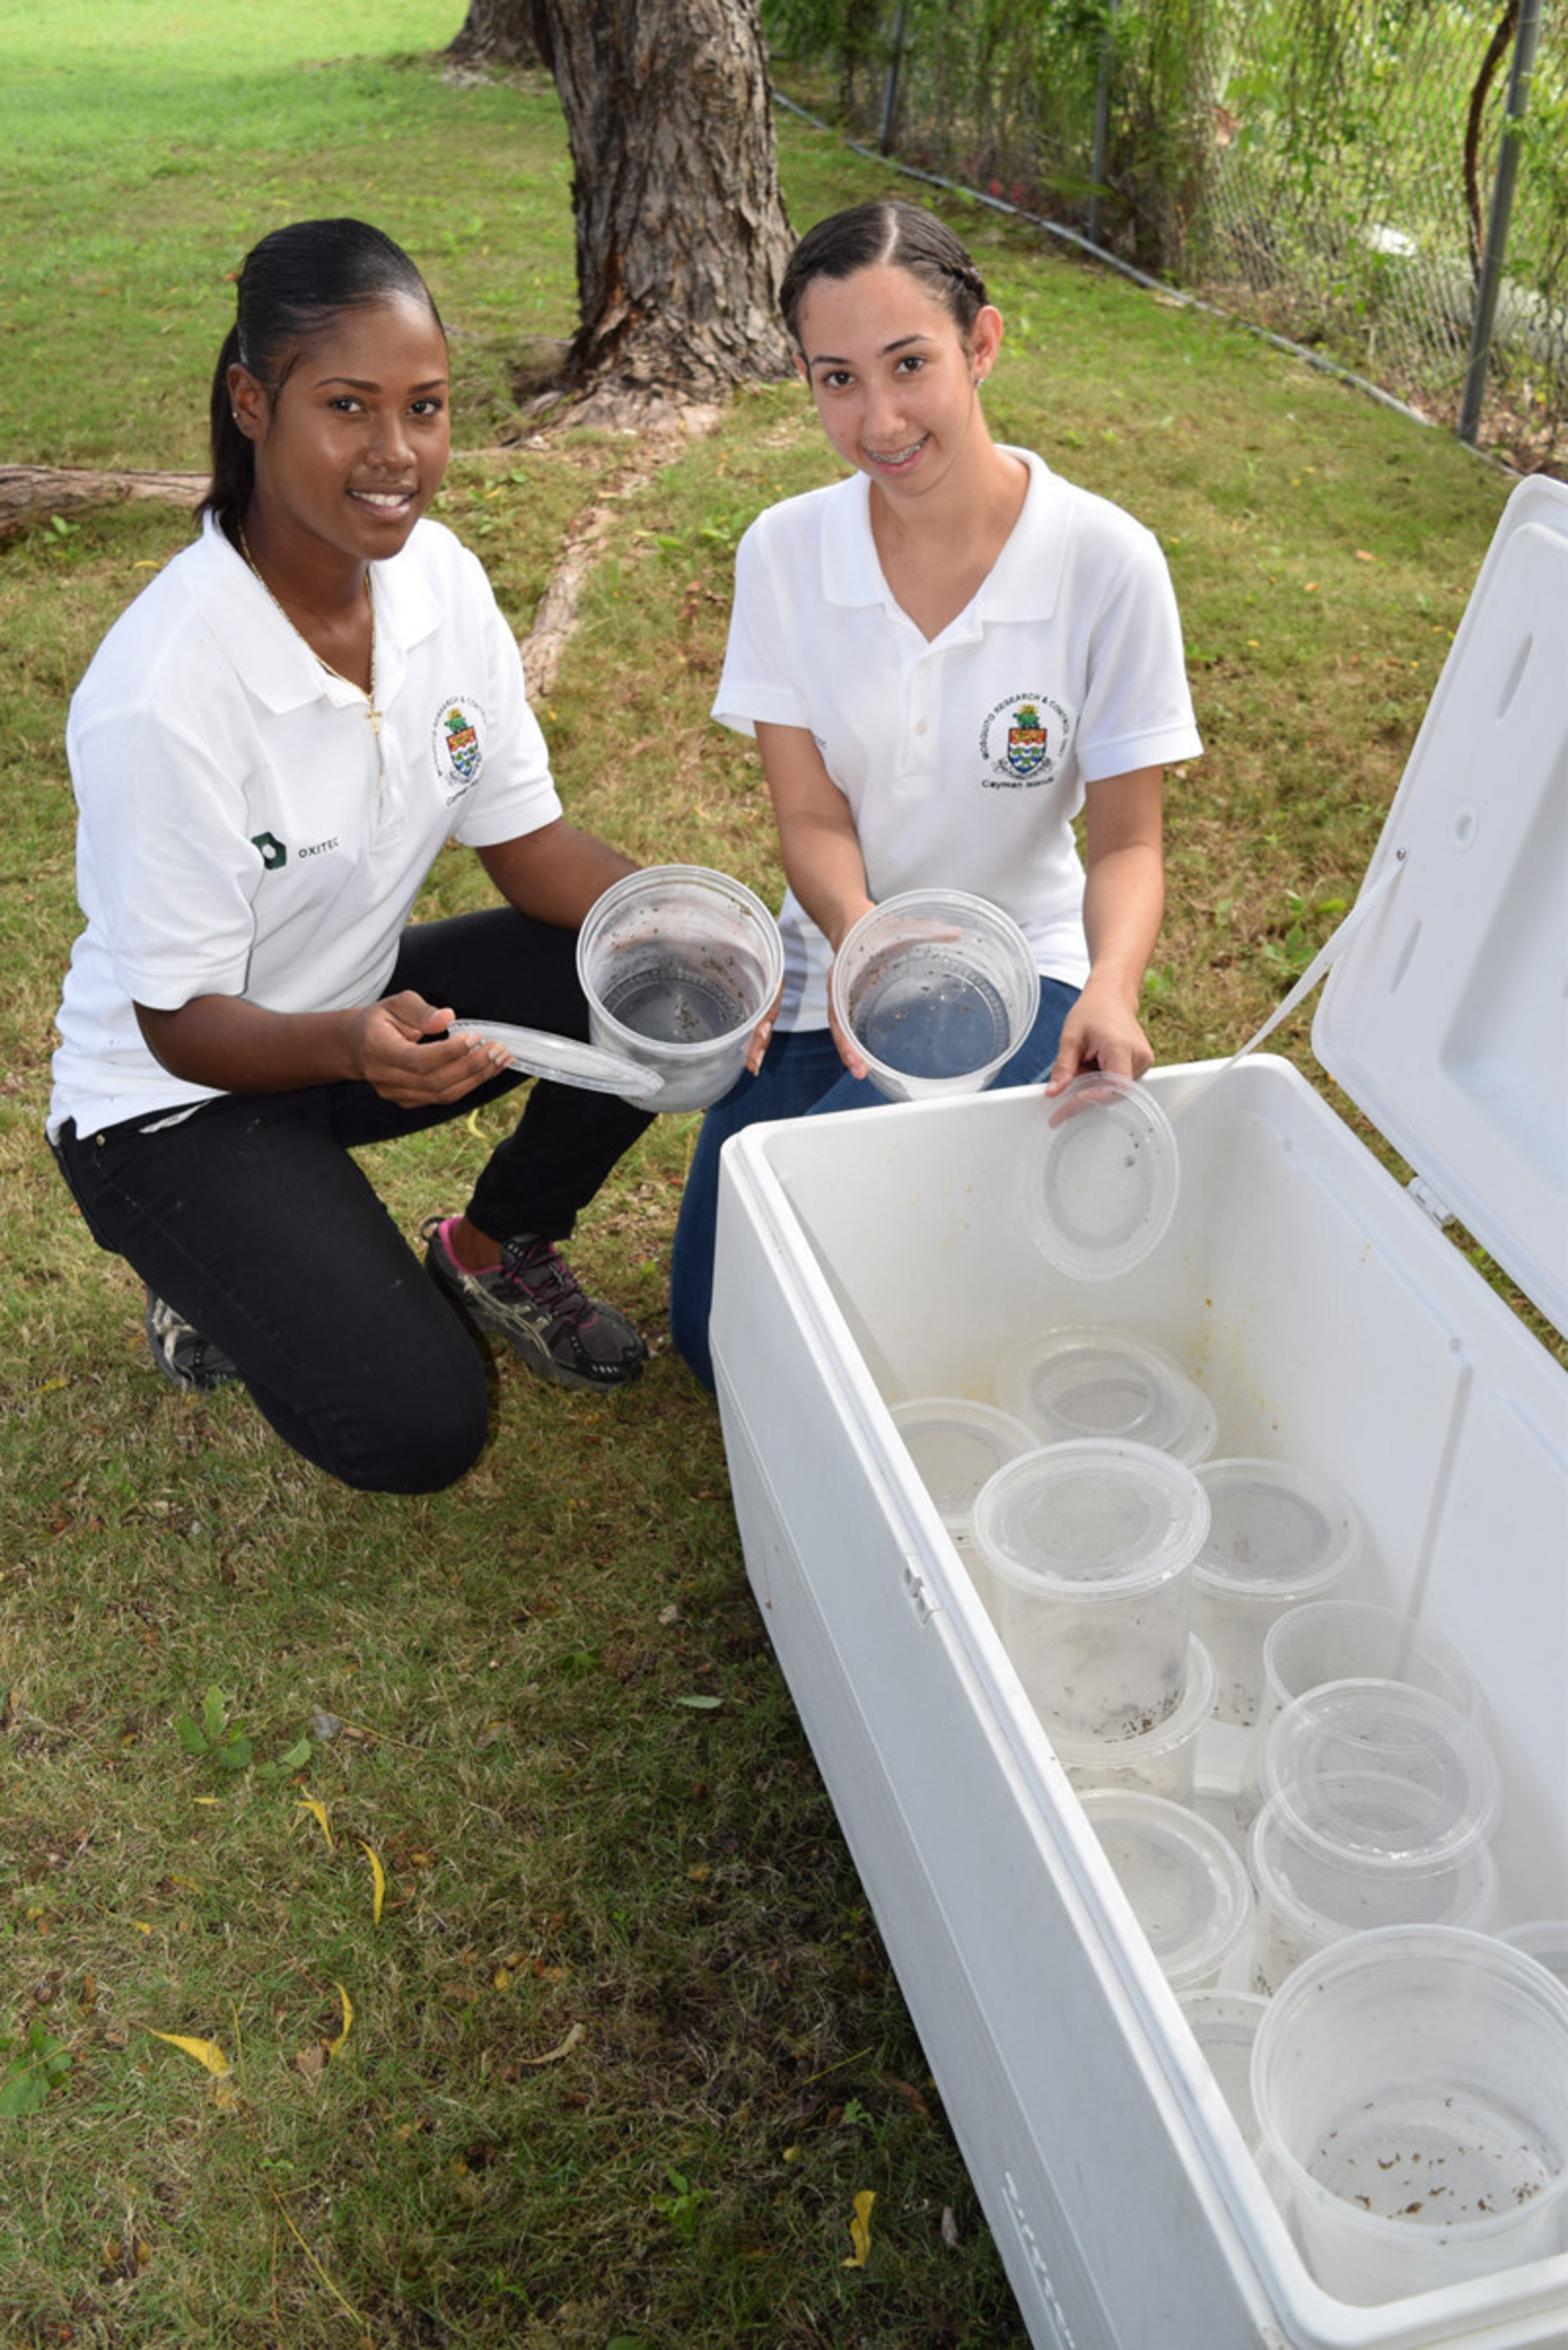 Giselle Johnson and Heidi Groves take pots of genetically modified mosquitoes from the cooler to release in the wild. (PRNewsFoto/Oxitec Ltd)